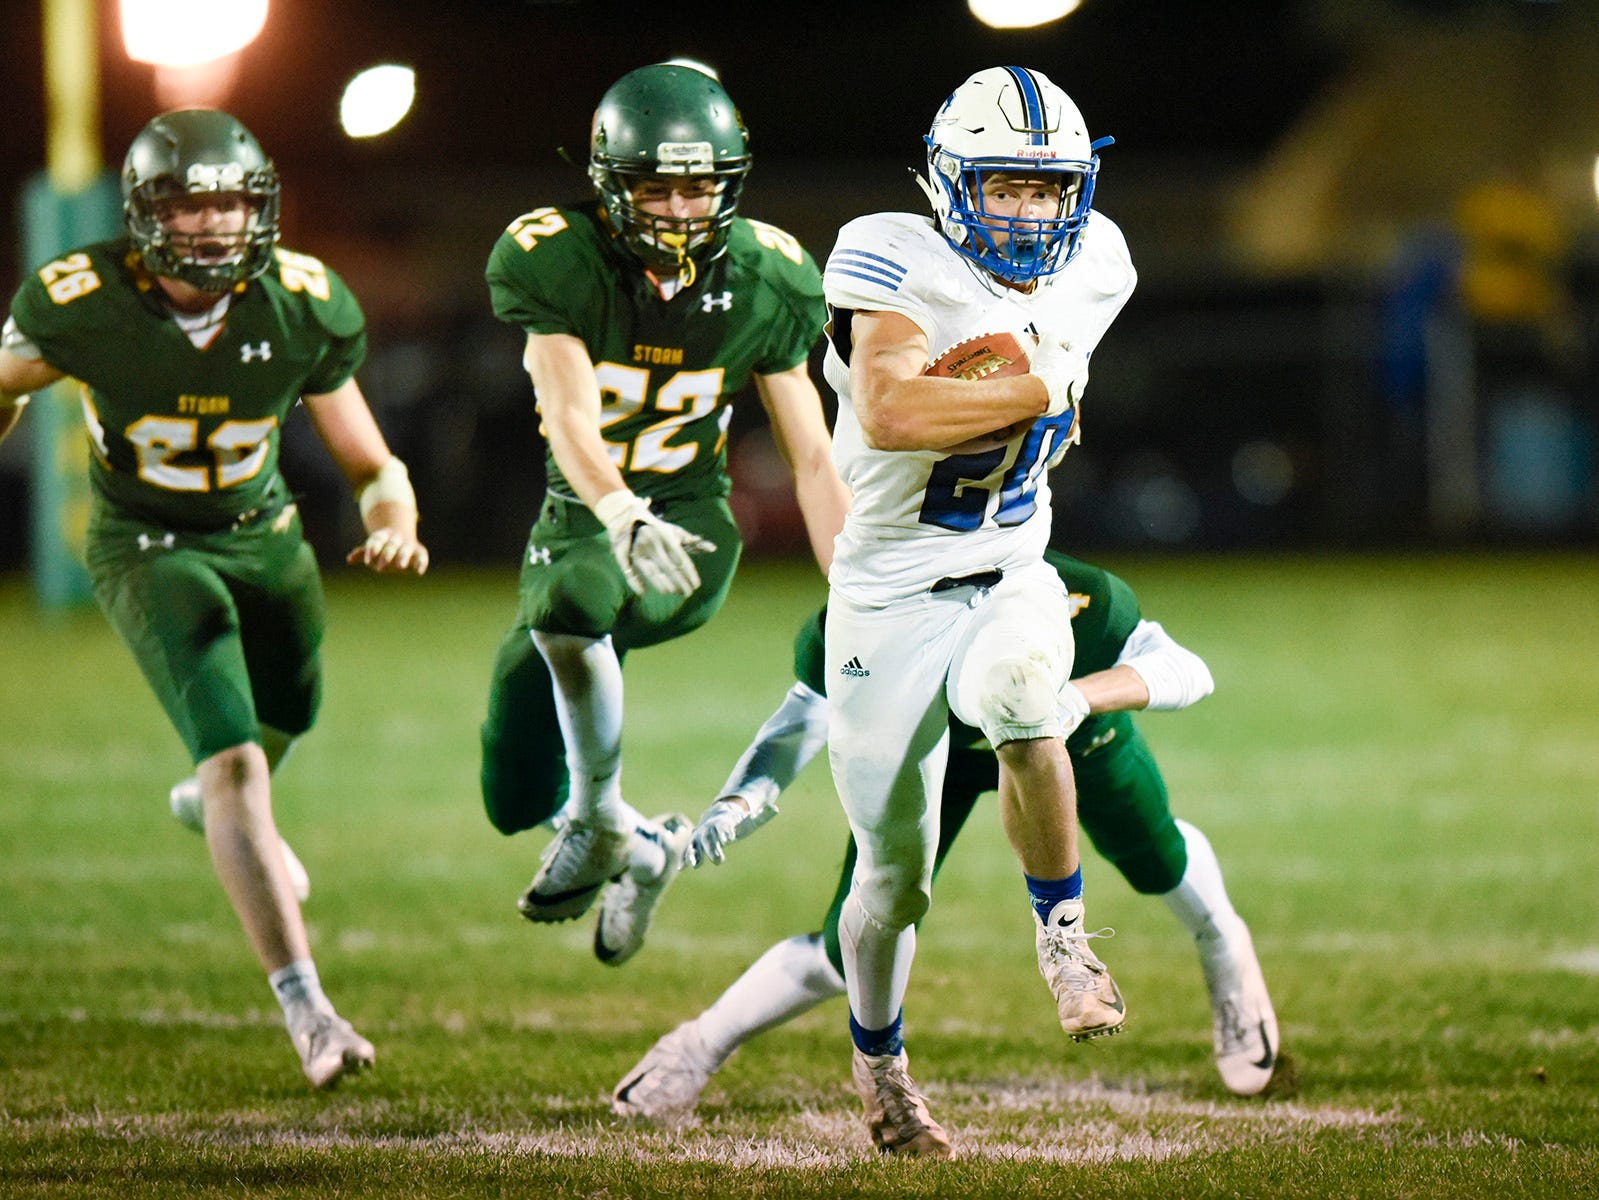 Sartell running back Cody Neitzke breaks away from the Sauk Rapids defense during the first half Friday, Sept. 28, in Sauk Rapids.